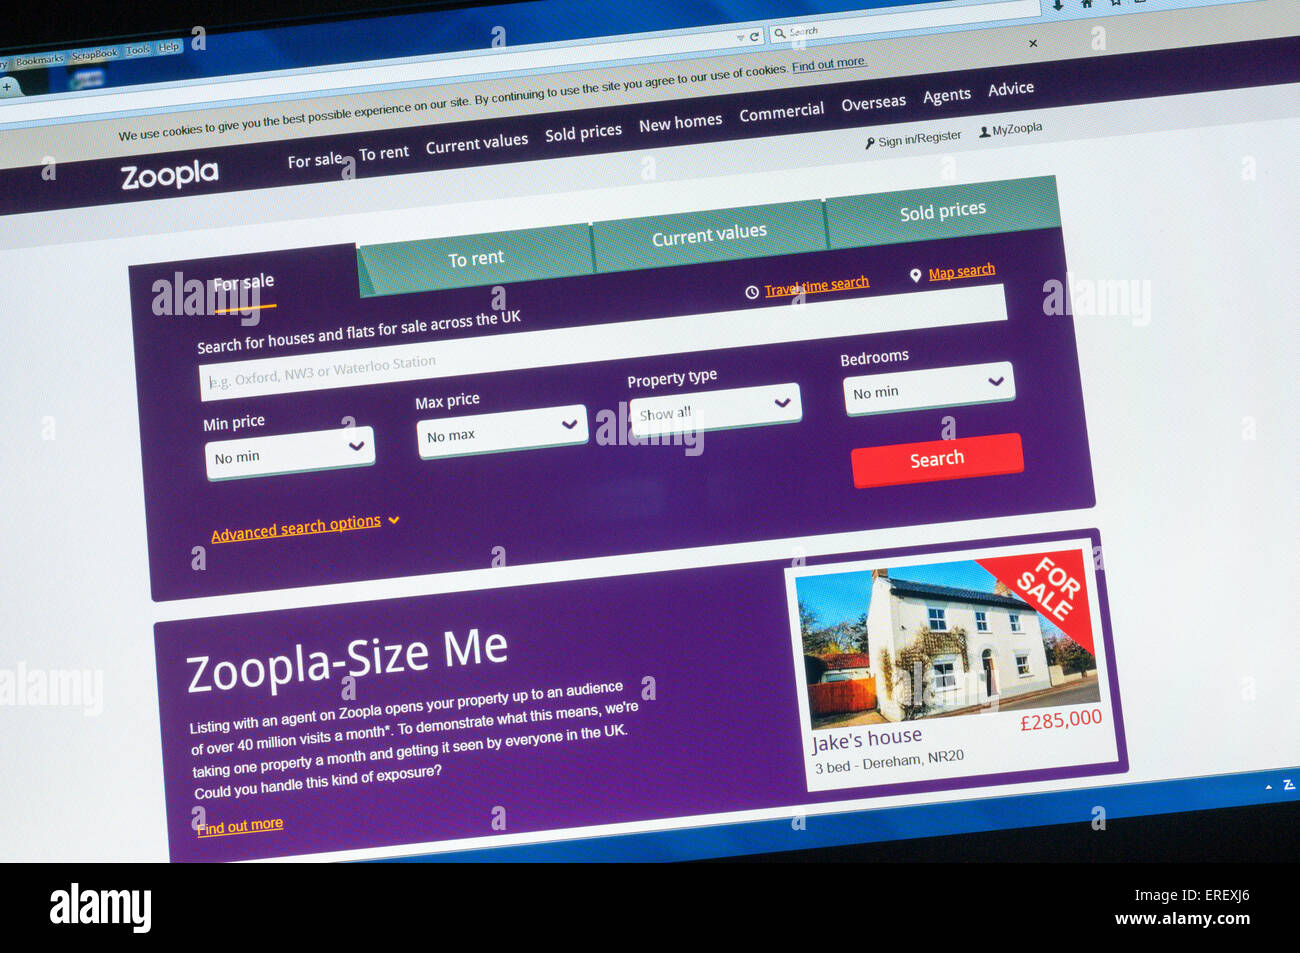 The home page of the Zoopla estate agency website. - Stock Image